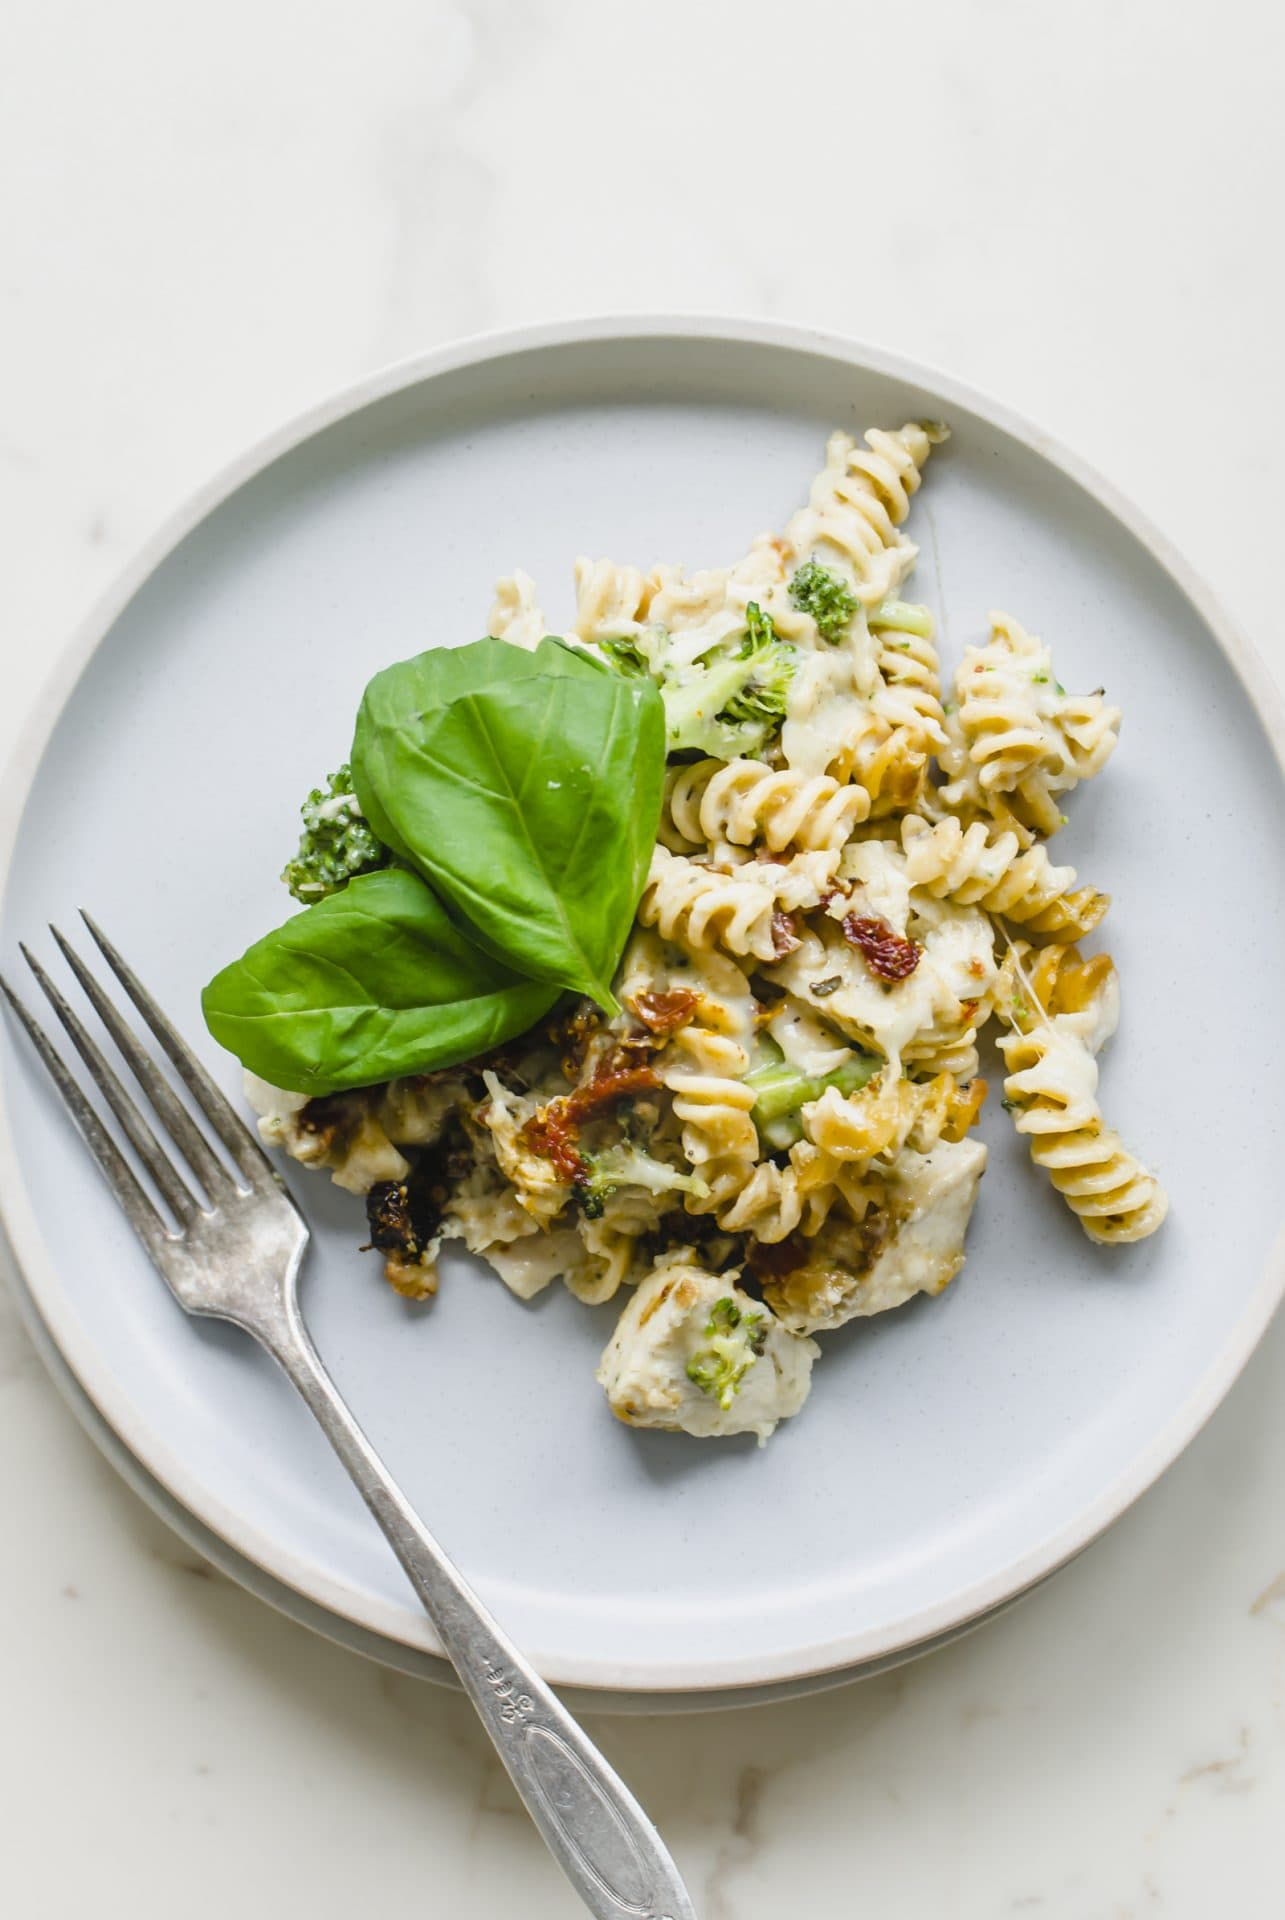 A blue plate with a serving of chicken rotini bake with a sprig of basil on top and a fork on the side.